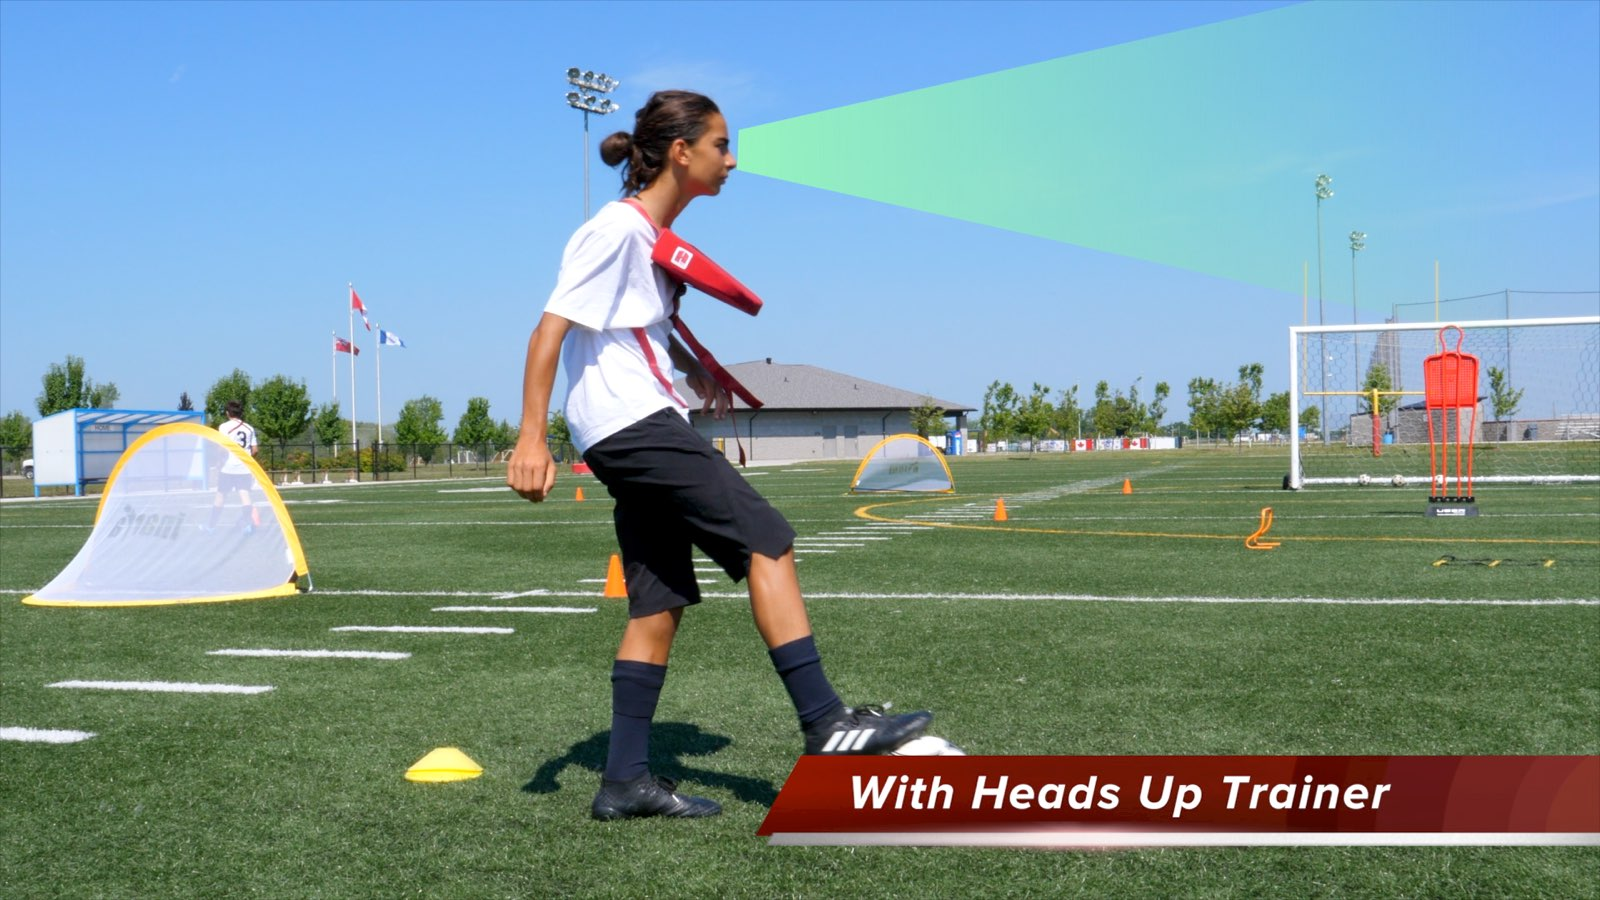 Heads Up Trainer 10